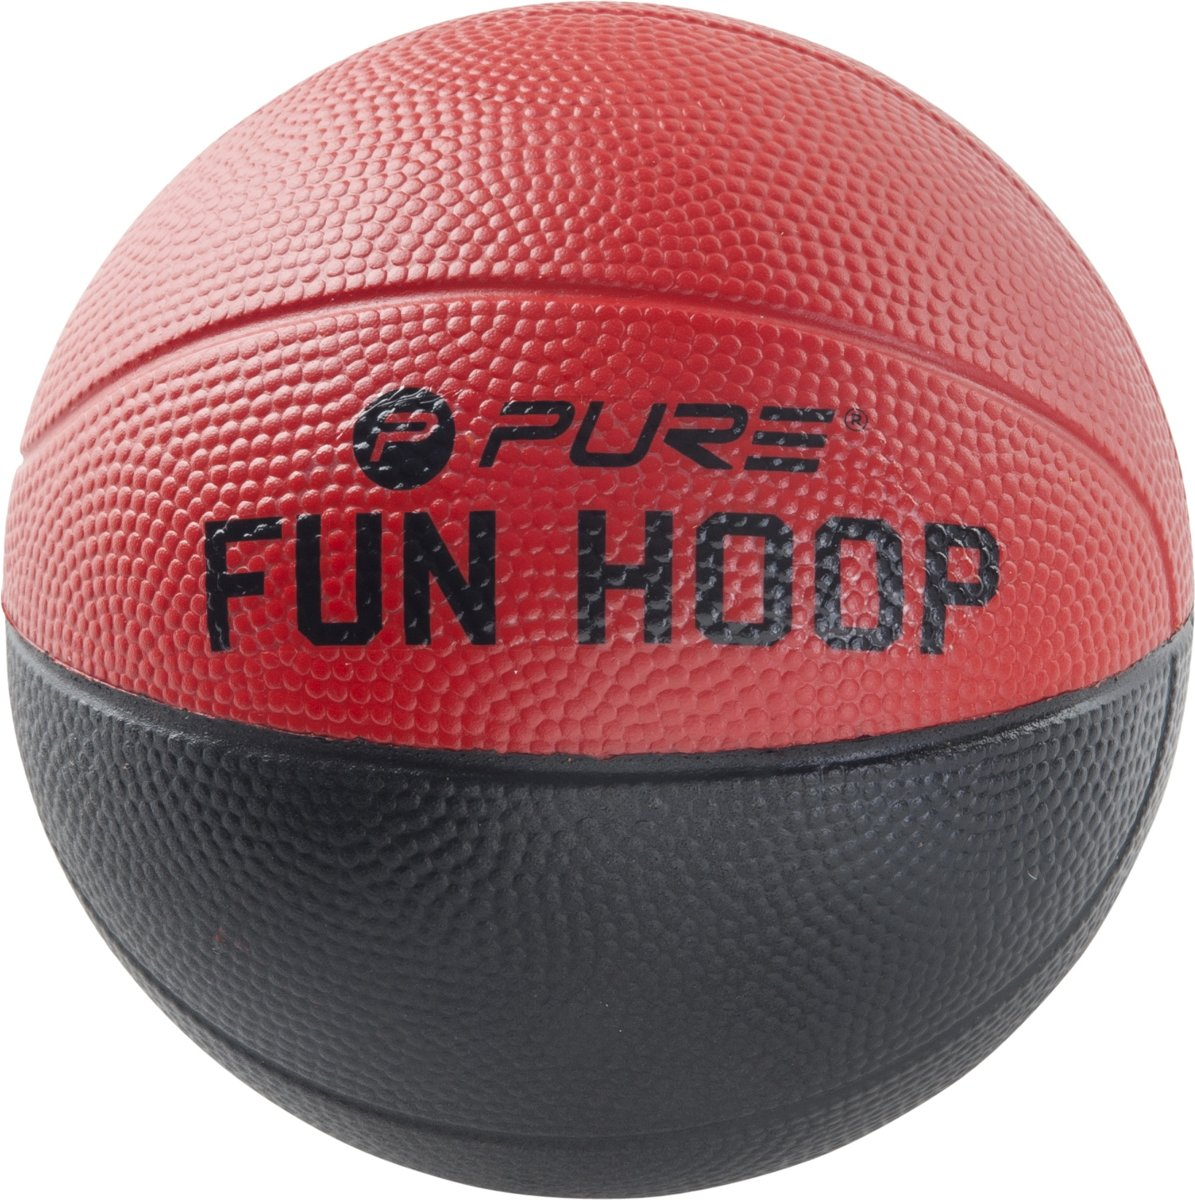 Pure2improve Fun Foam Bal 5.0 Rood/zwart